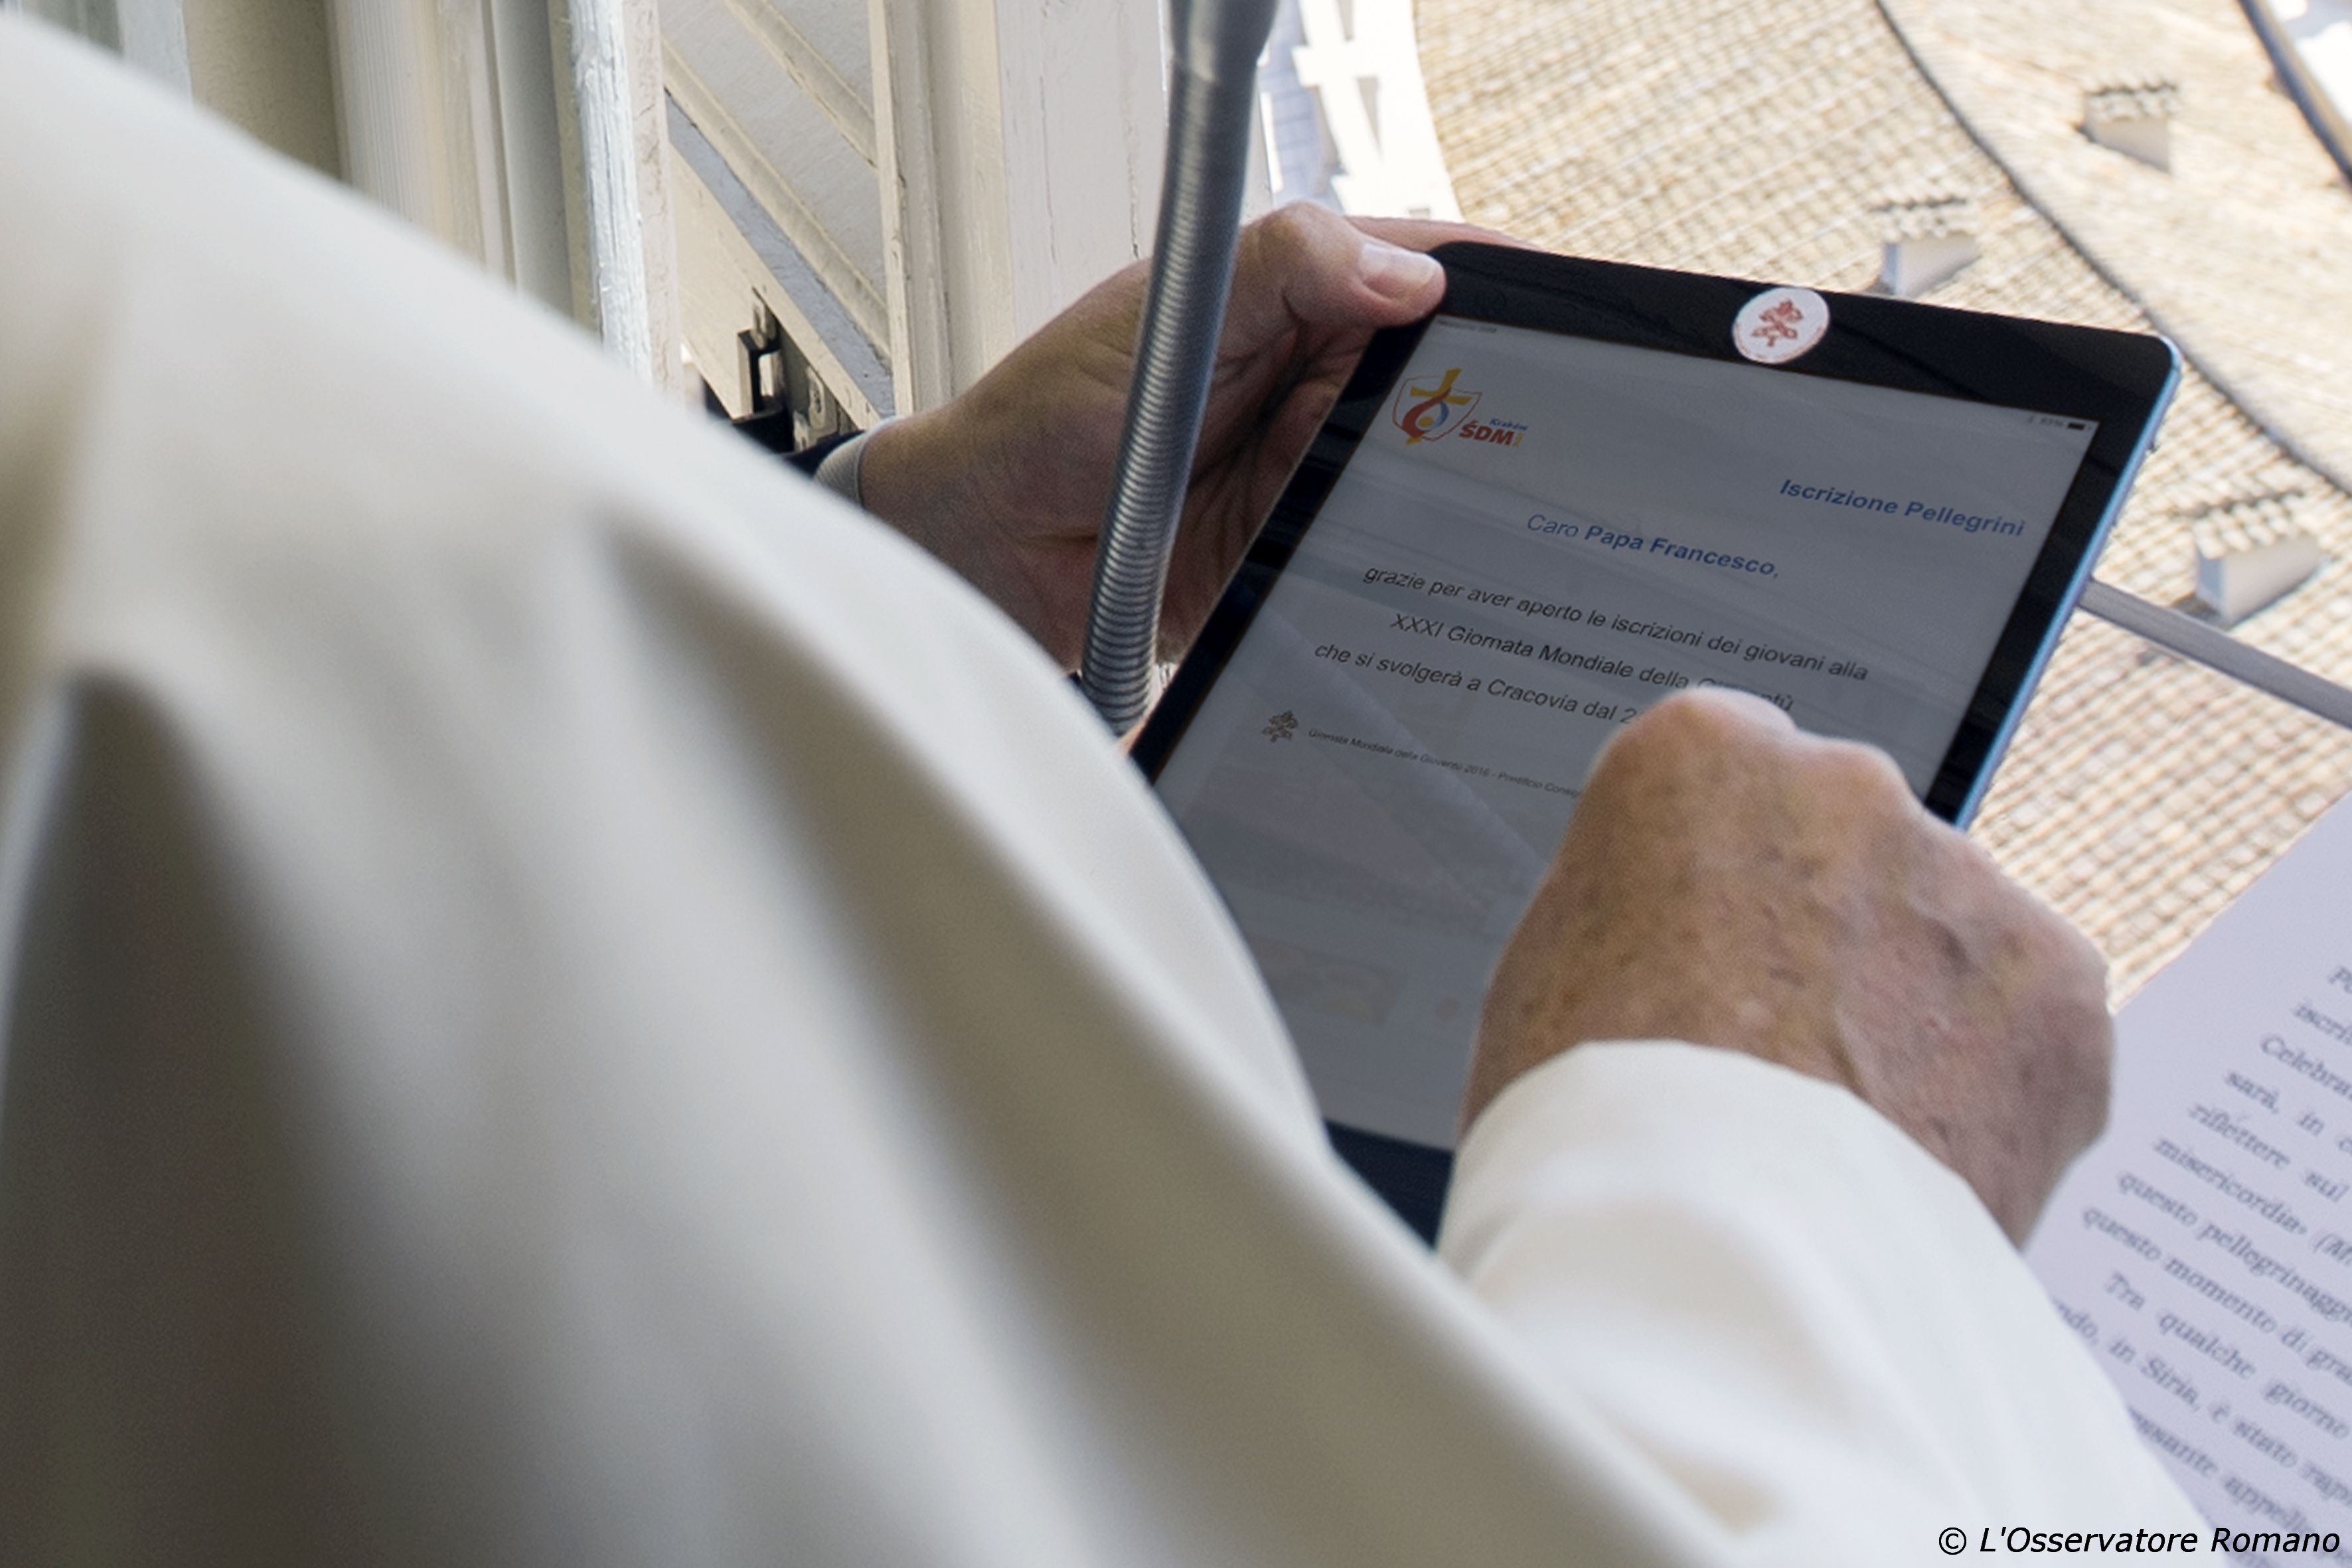 Pope Francis registers himself through a tablet as a pilgrim to the 2016 World Youth Day in Poland